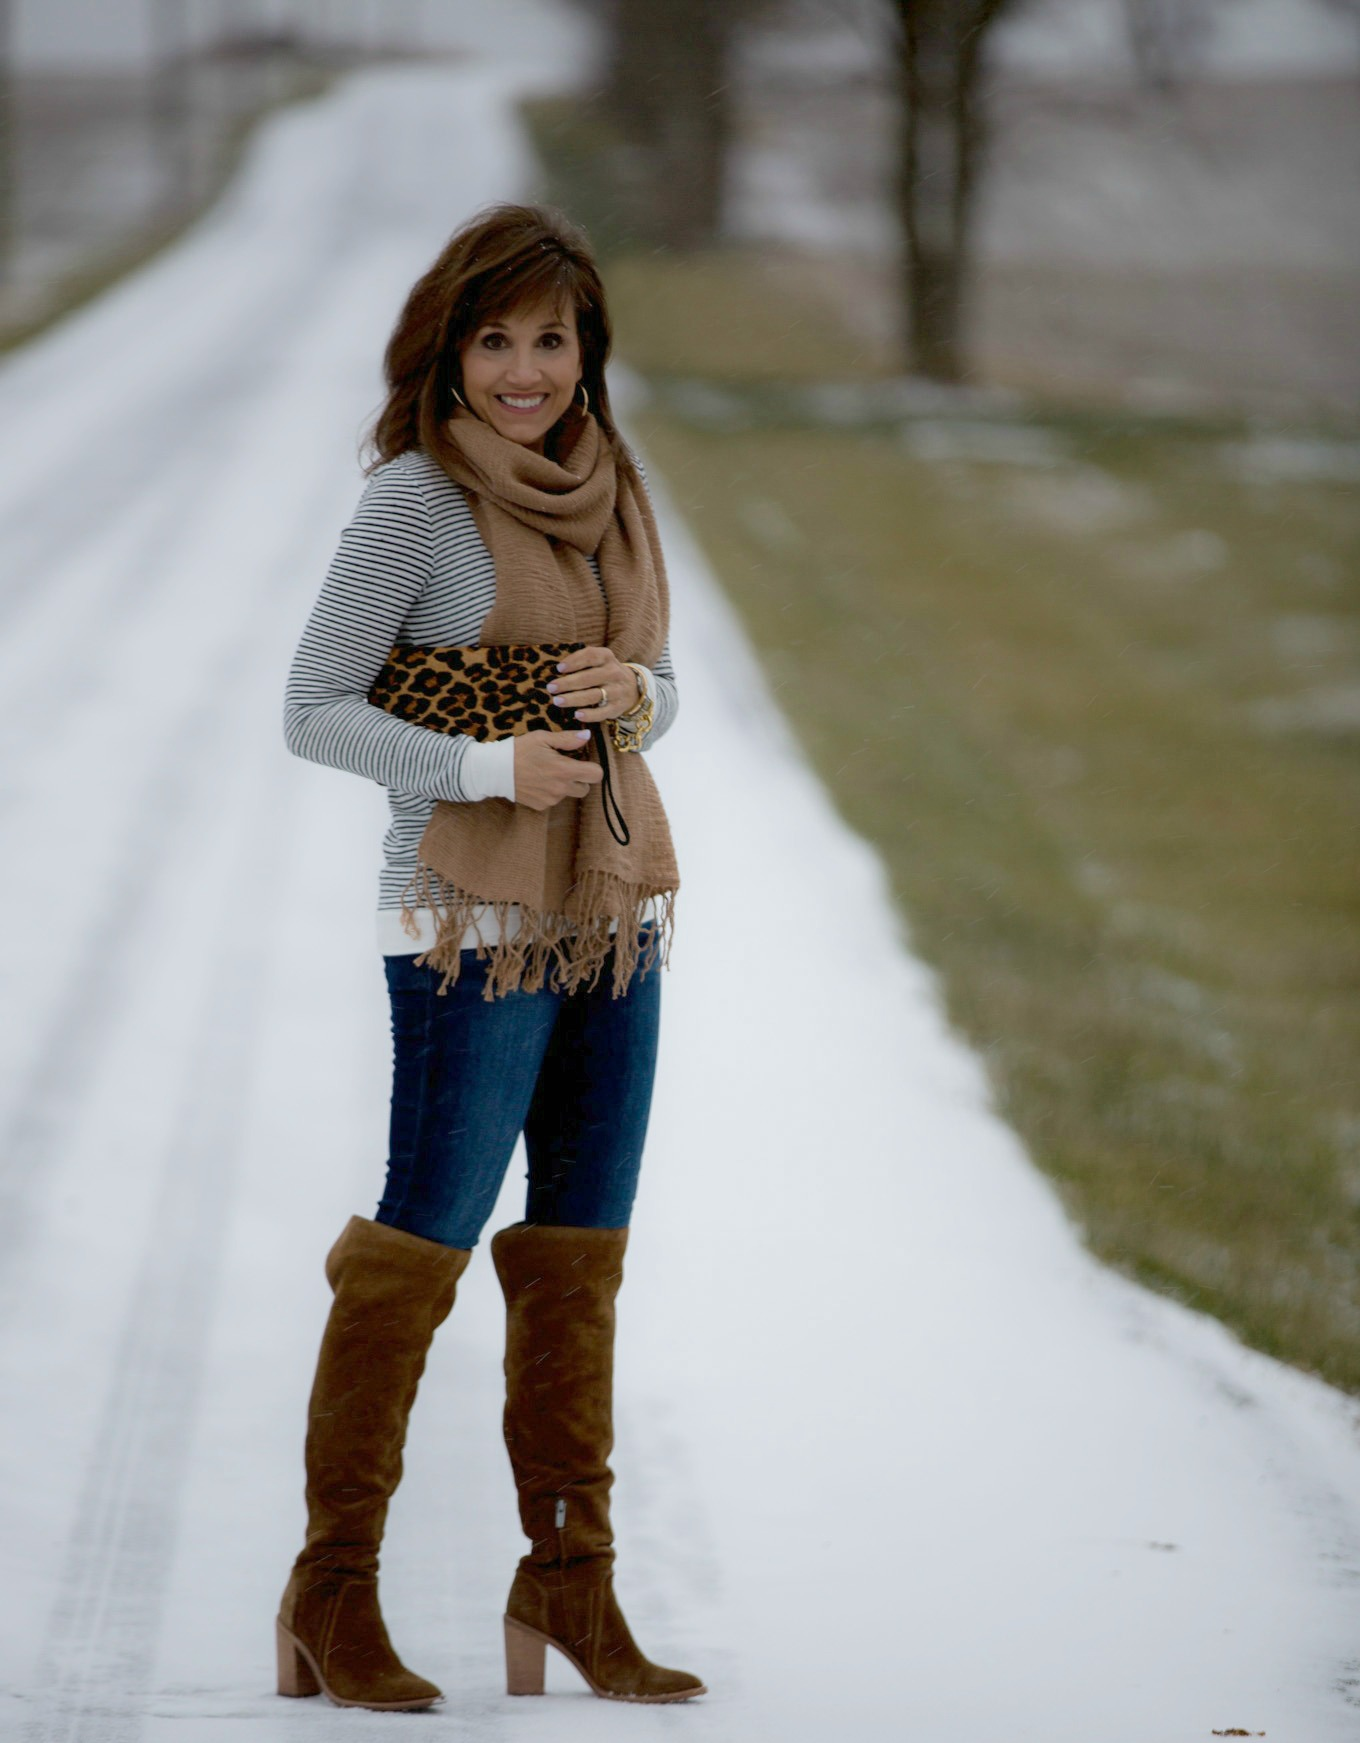 Fashion blogger, Cyndi Spivey, styling a striped top and fringe scarf.